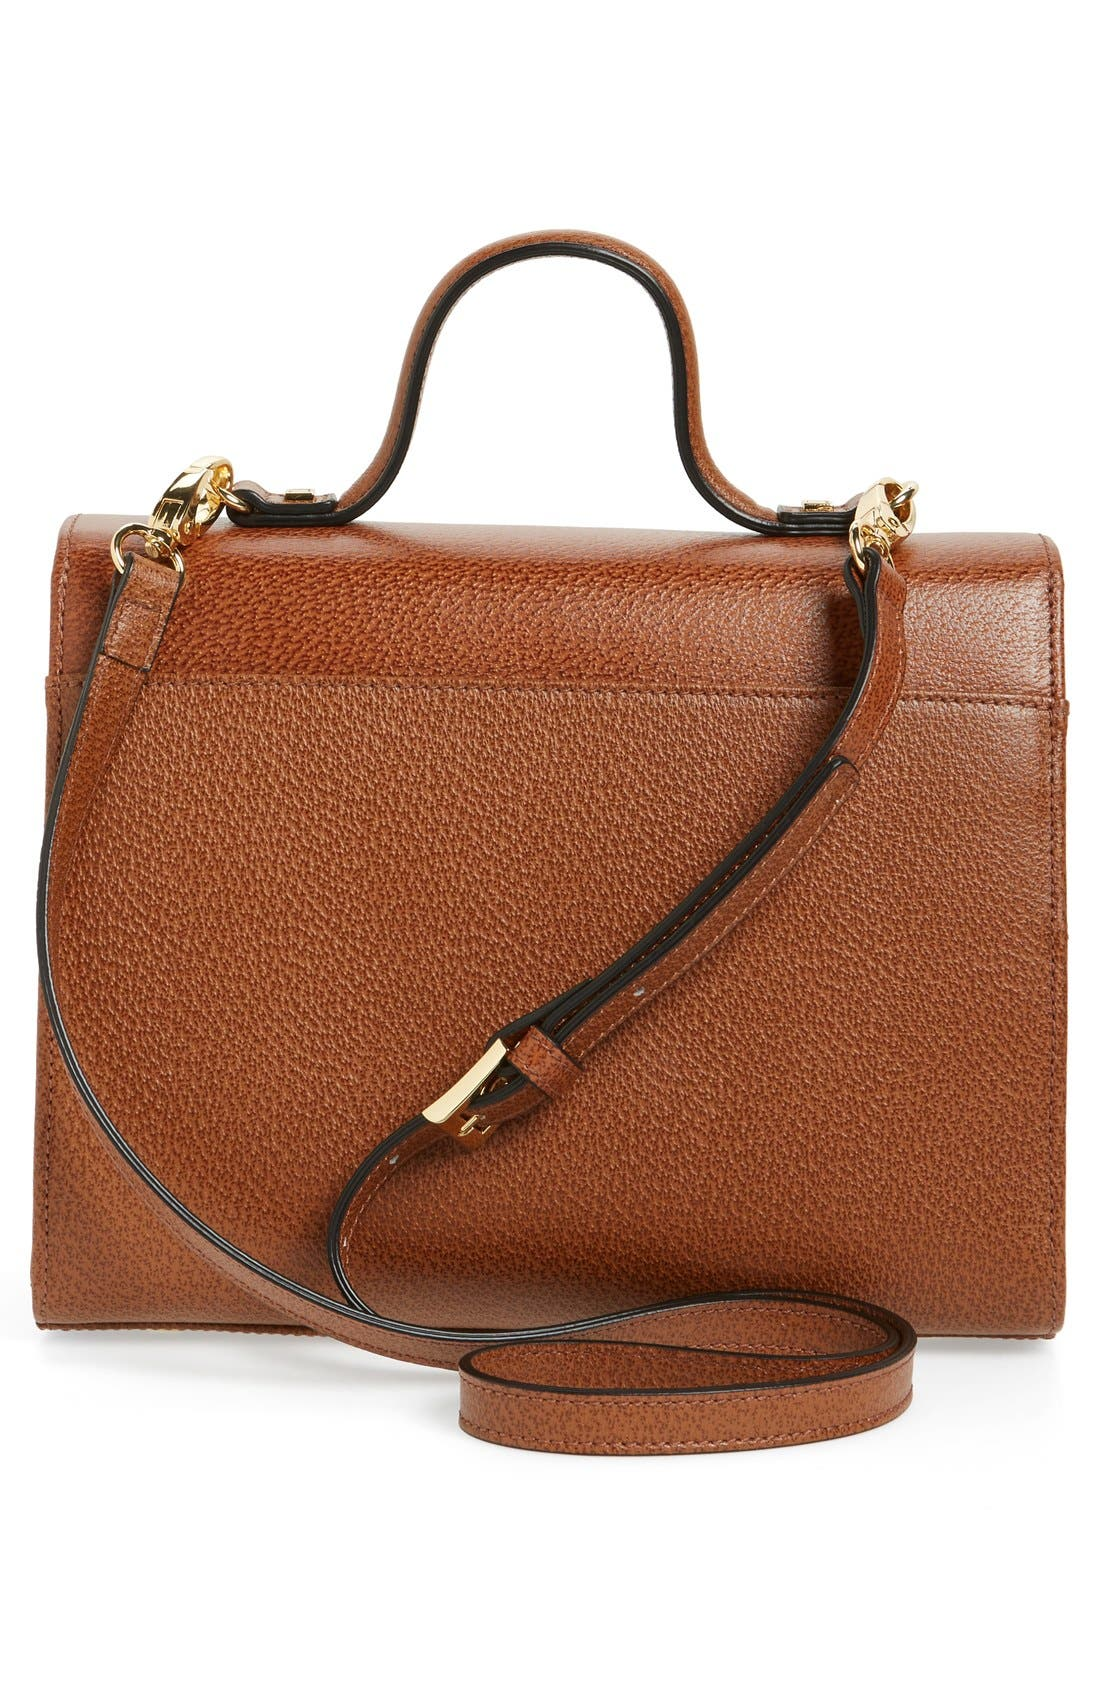 LODIS Stephanie Under Lock & Key - Medium Bree Leather Crossbody Bag,                             Alternate thumbnail 13, color,